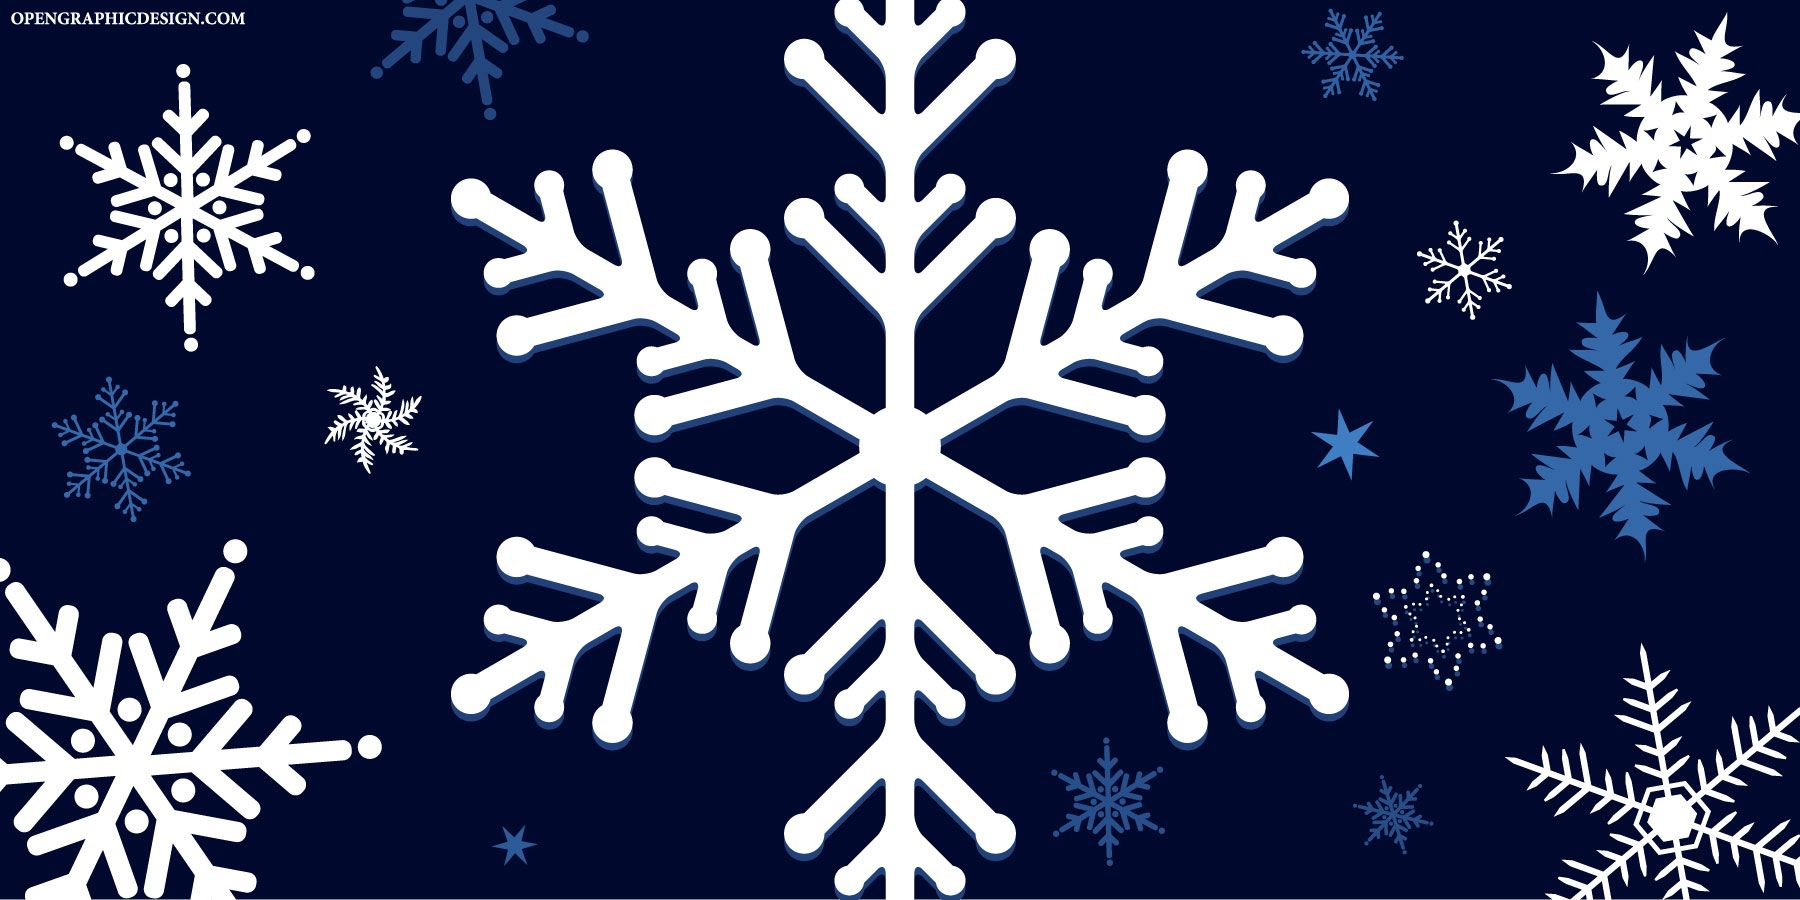 Free Vector Snowflakes, download winter snow flakes clip art ...